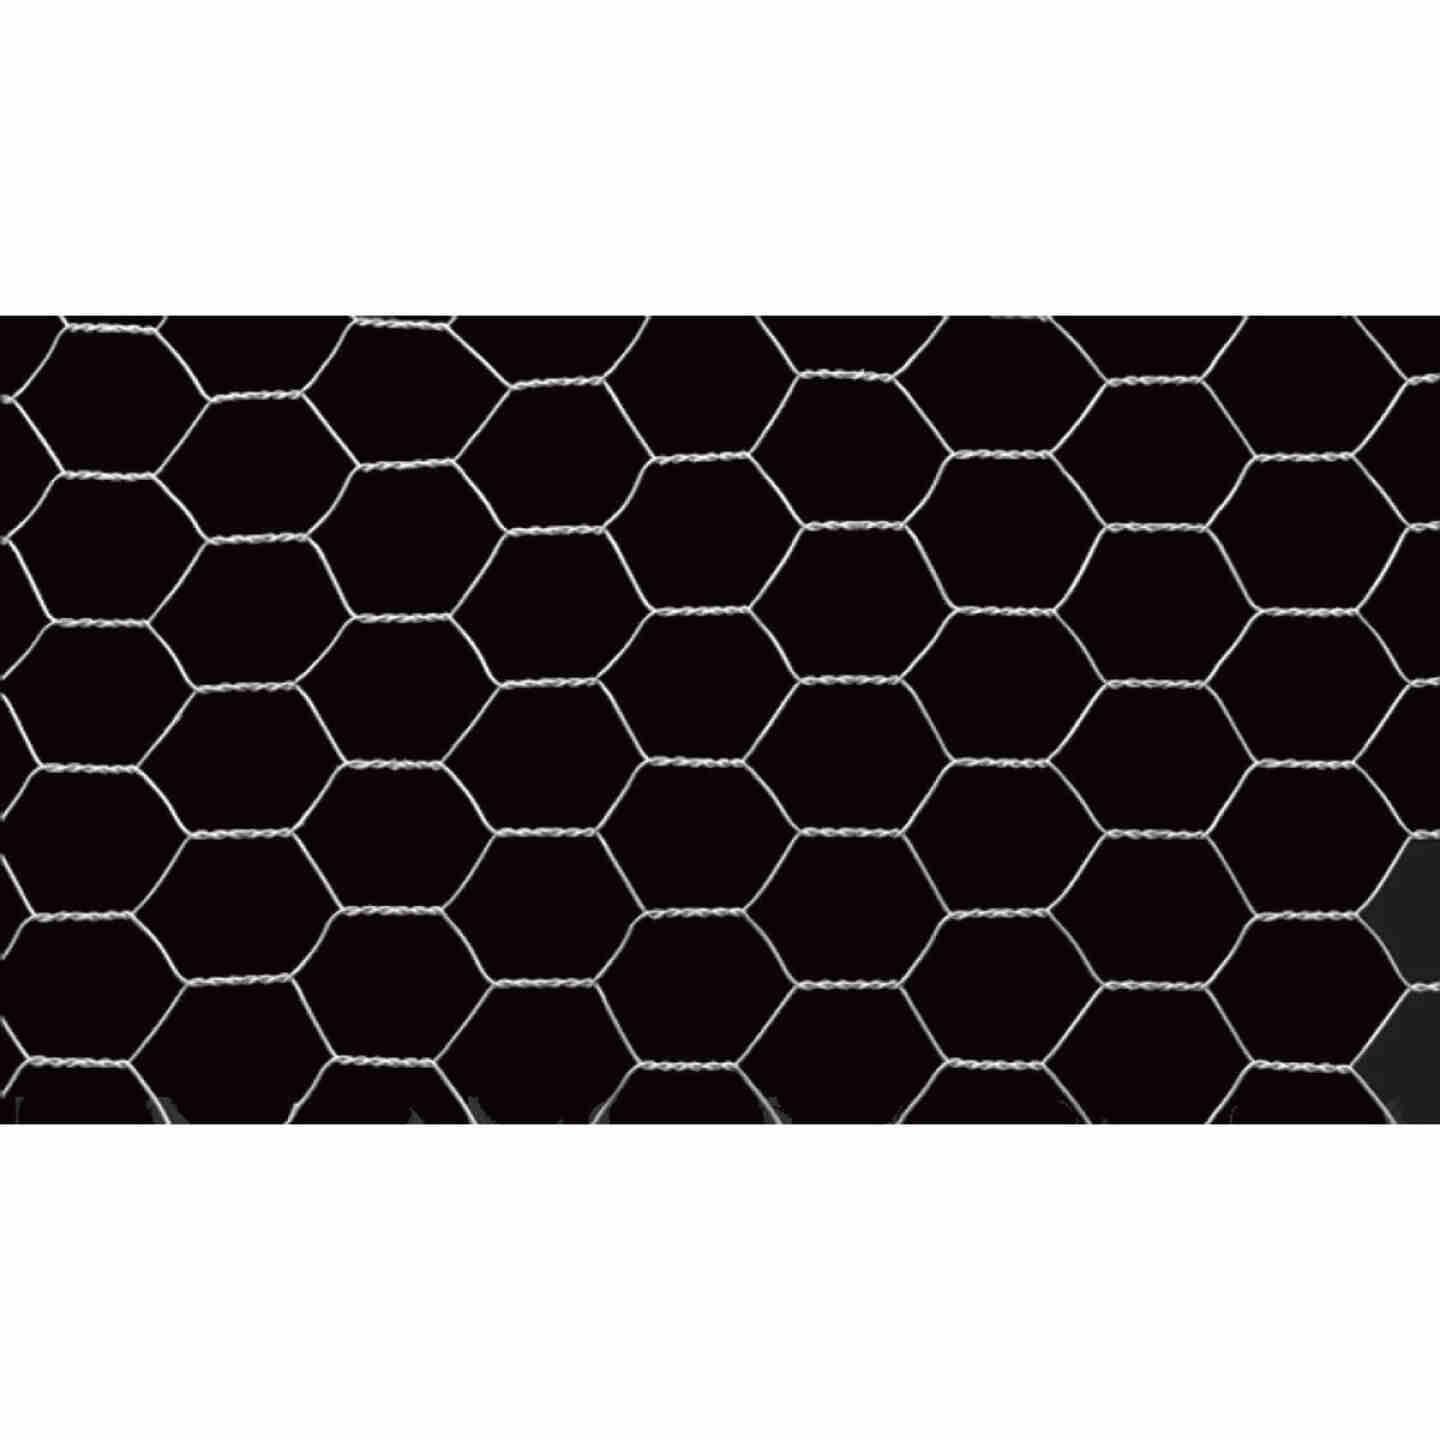 Do it 1 In. x 60 In. H. x 150 Ft. L. Hexagonal Wire Poultry Netting Image 3